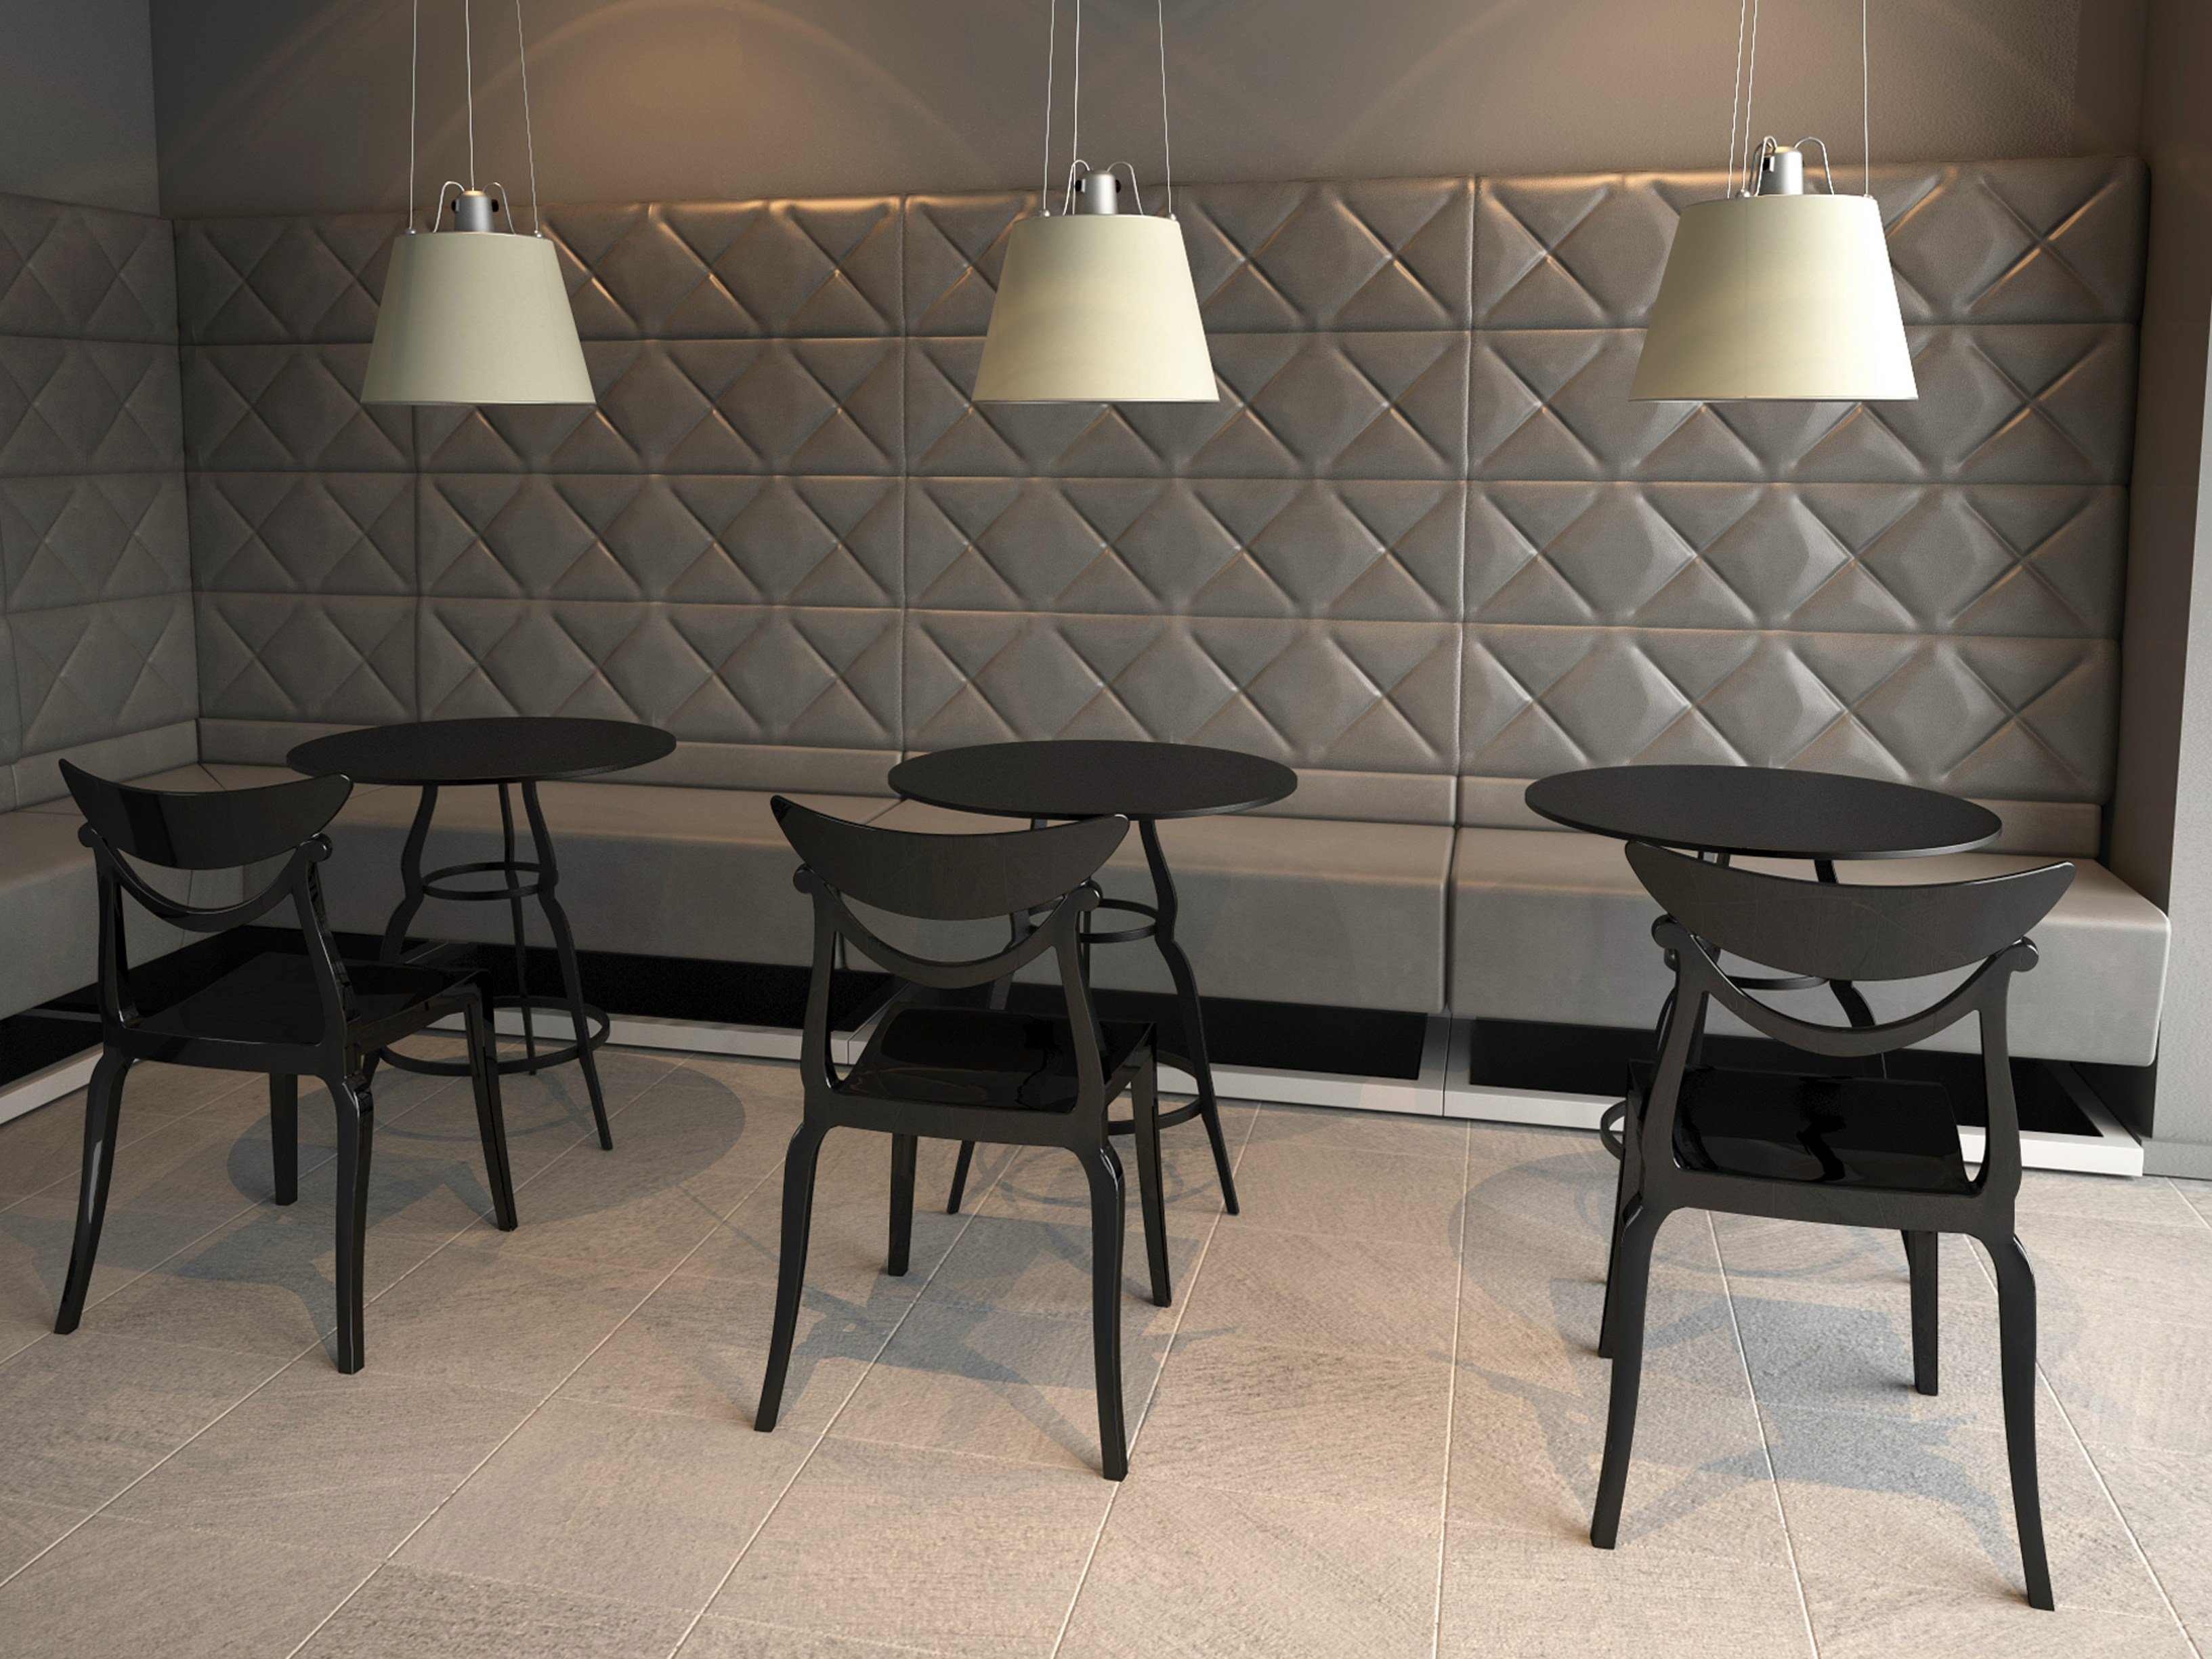 banquette pour bar et restaurant rembourr e scoop collection by alma design design andrea pagani